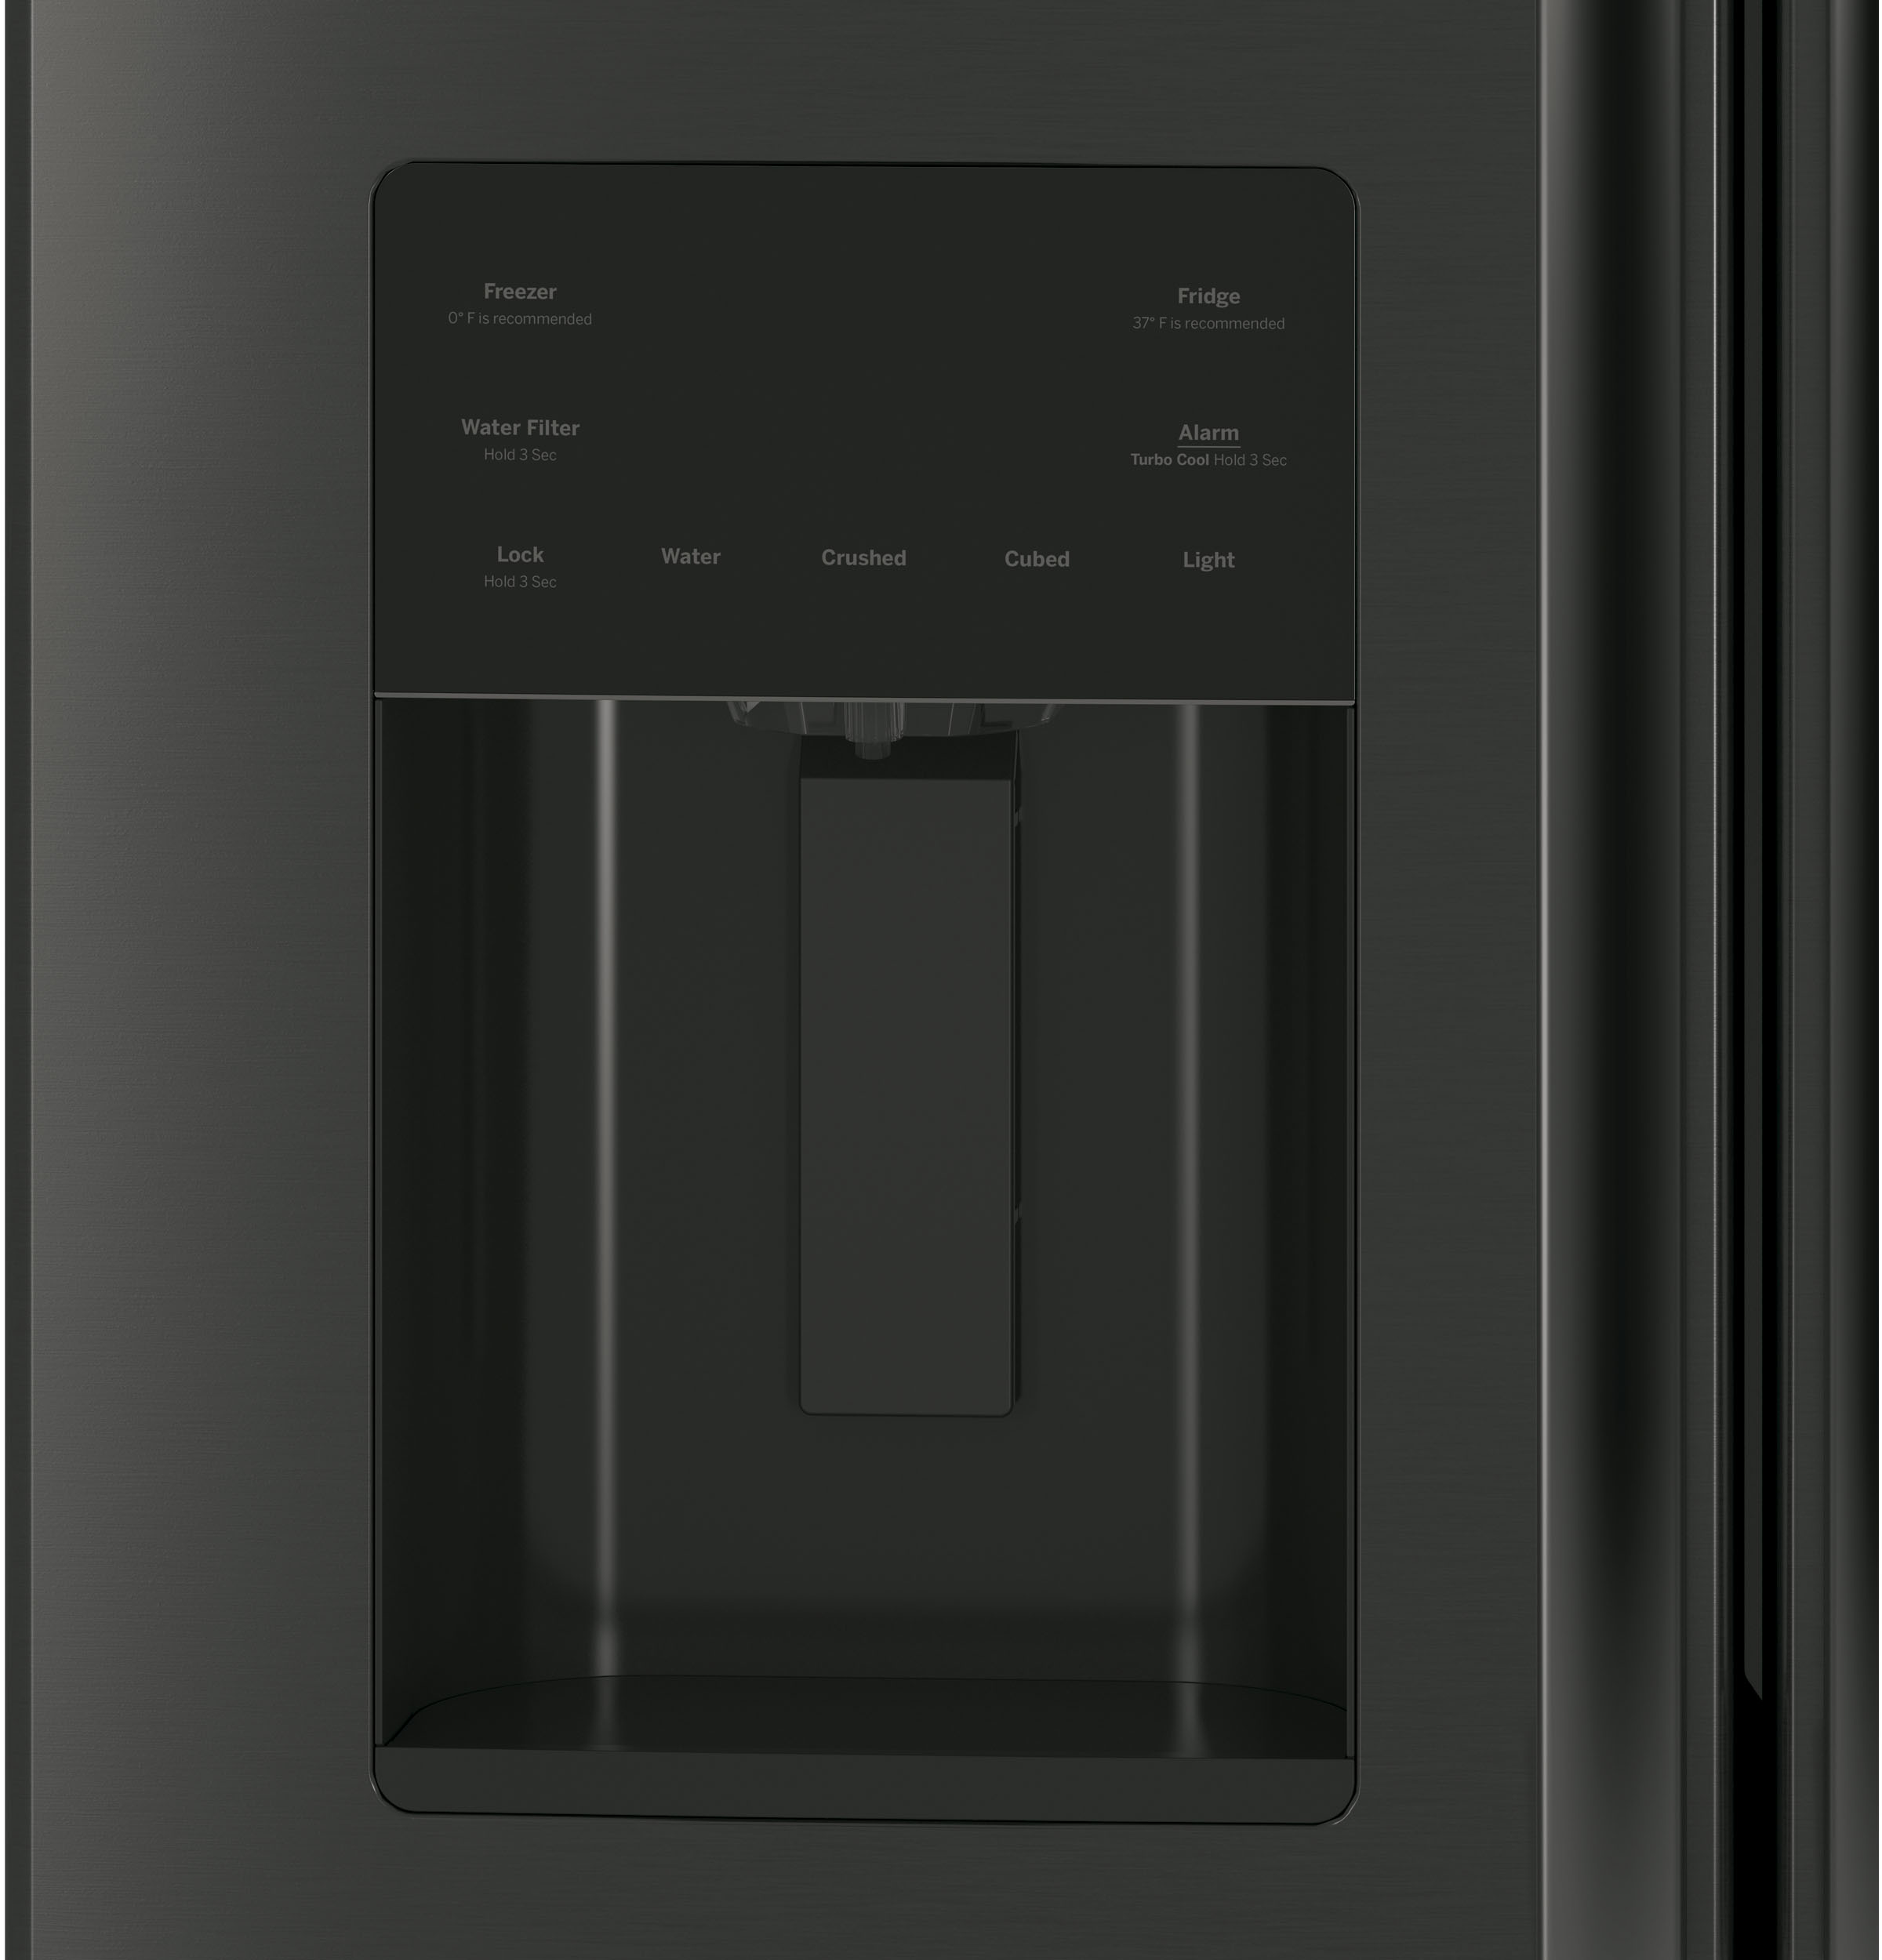 Model: GFE24JBLTS | GE® ENERGY STAR® 23.7 Cu. Ft. French-Door Refrigerator